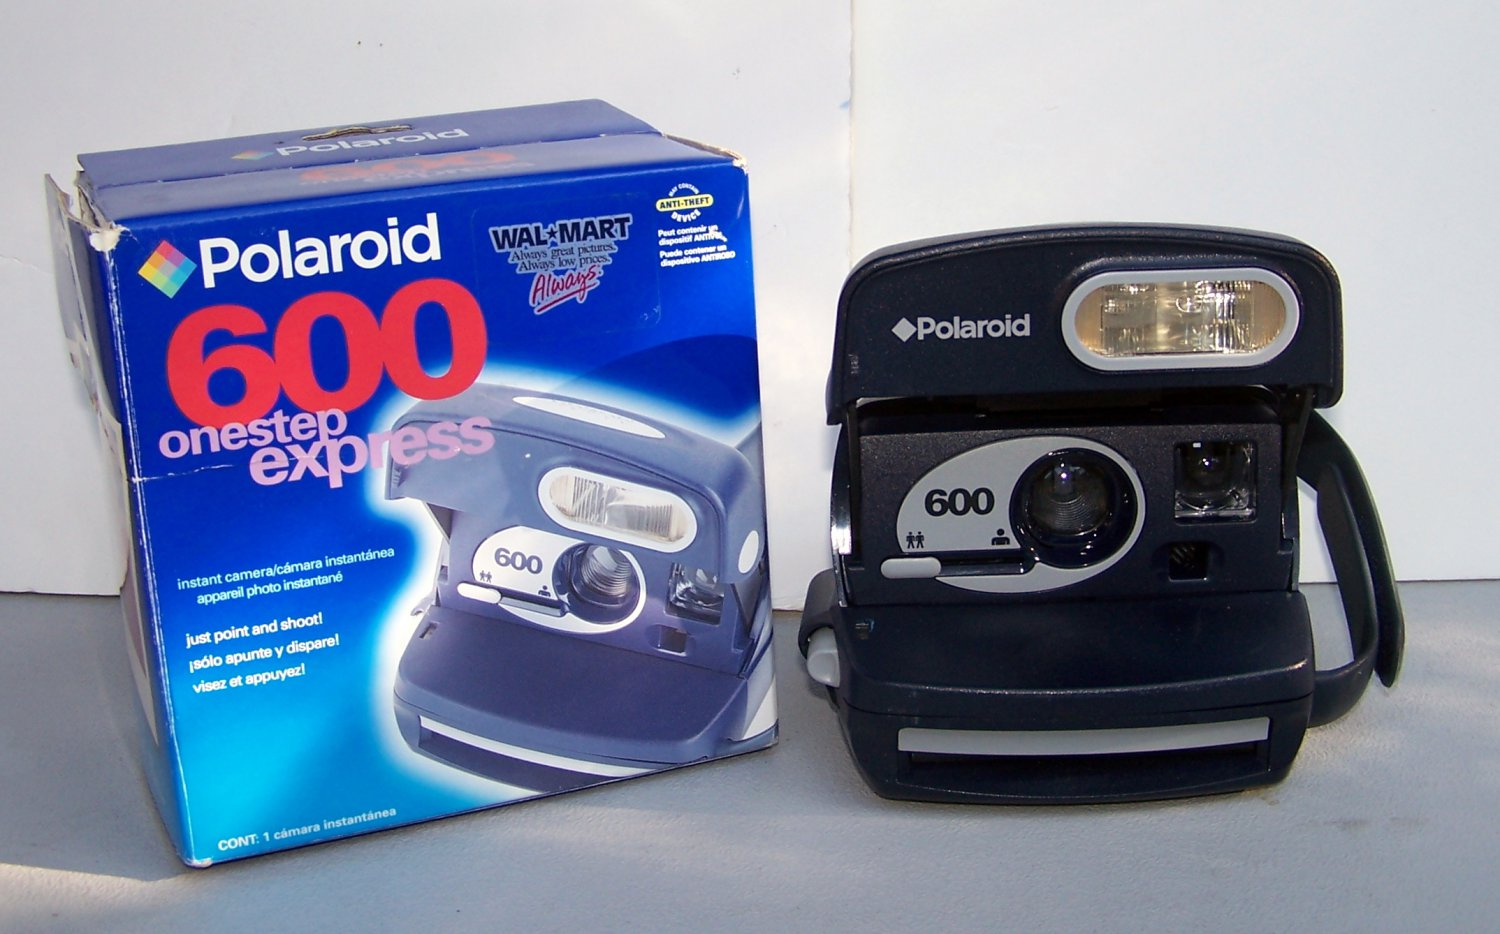 Polaroid One Step Express Instant Camera Excellent Condition onestep uses 600 film